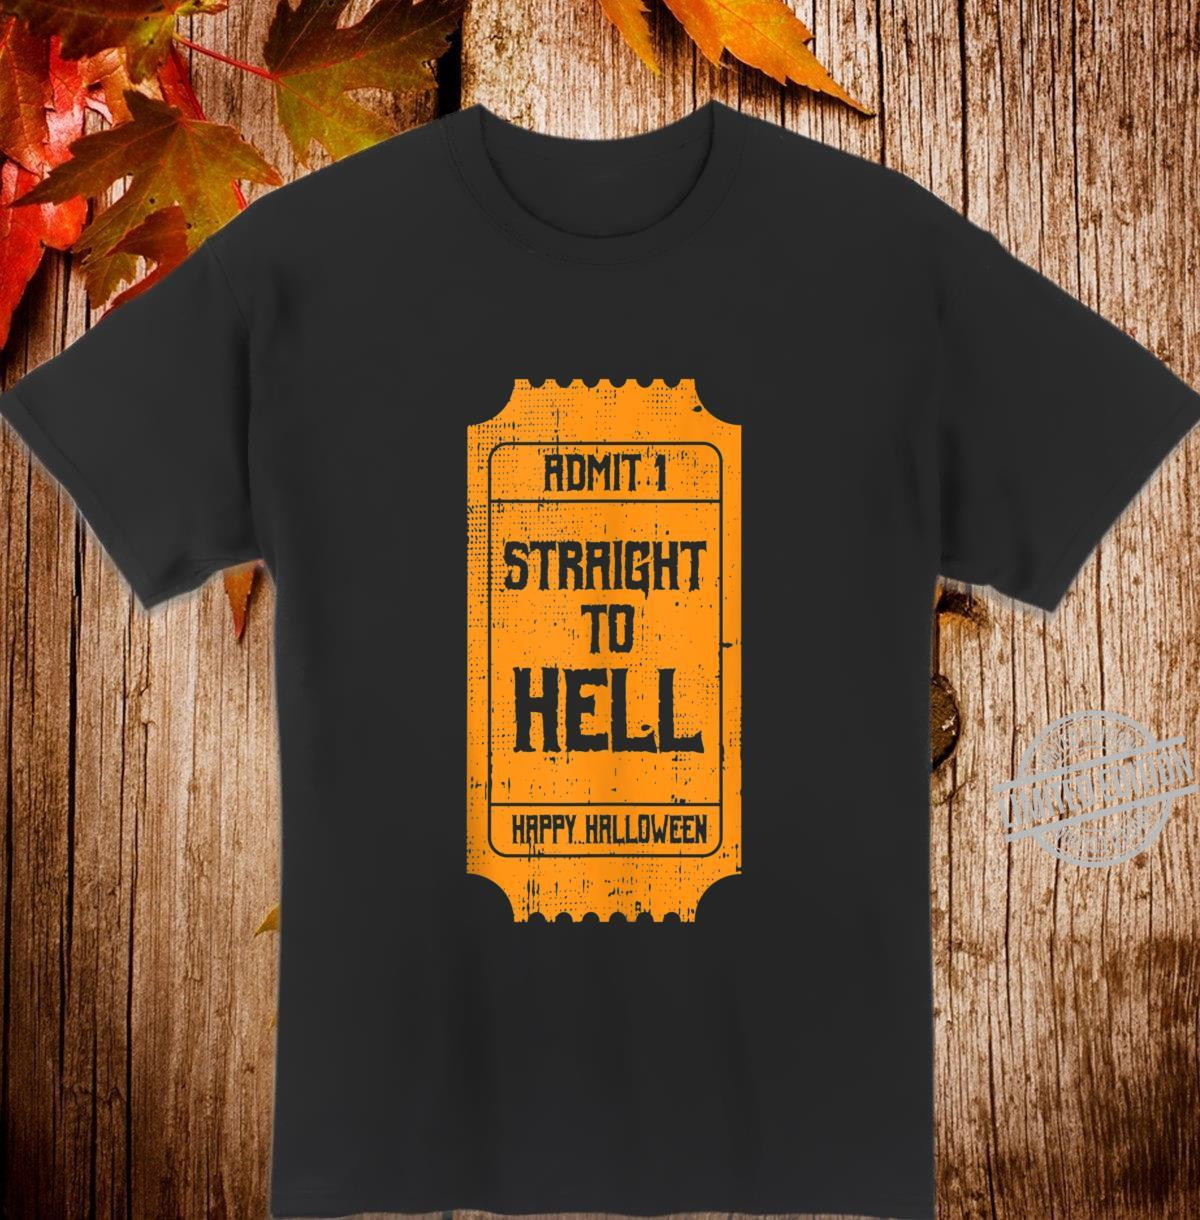 TO HELL Movie Ticket Costume Easy Halloween Shirt